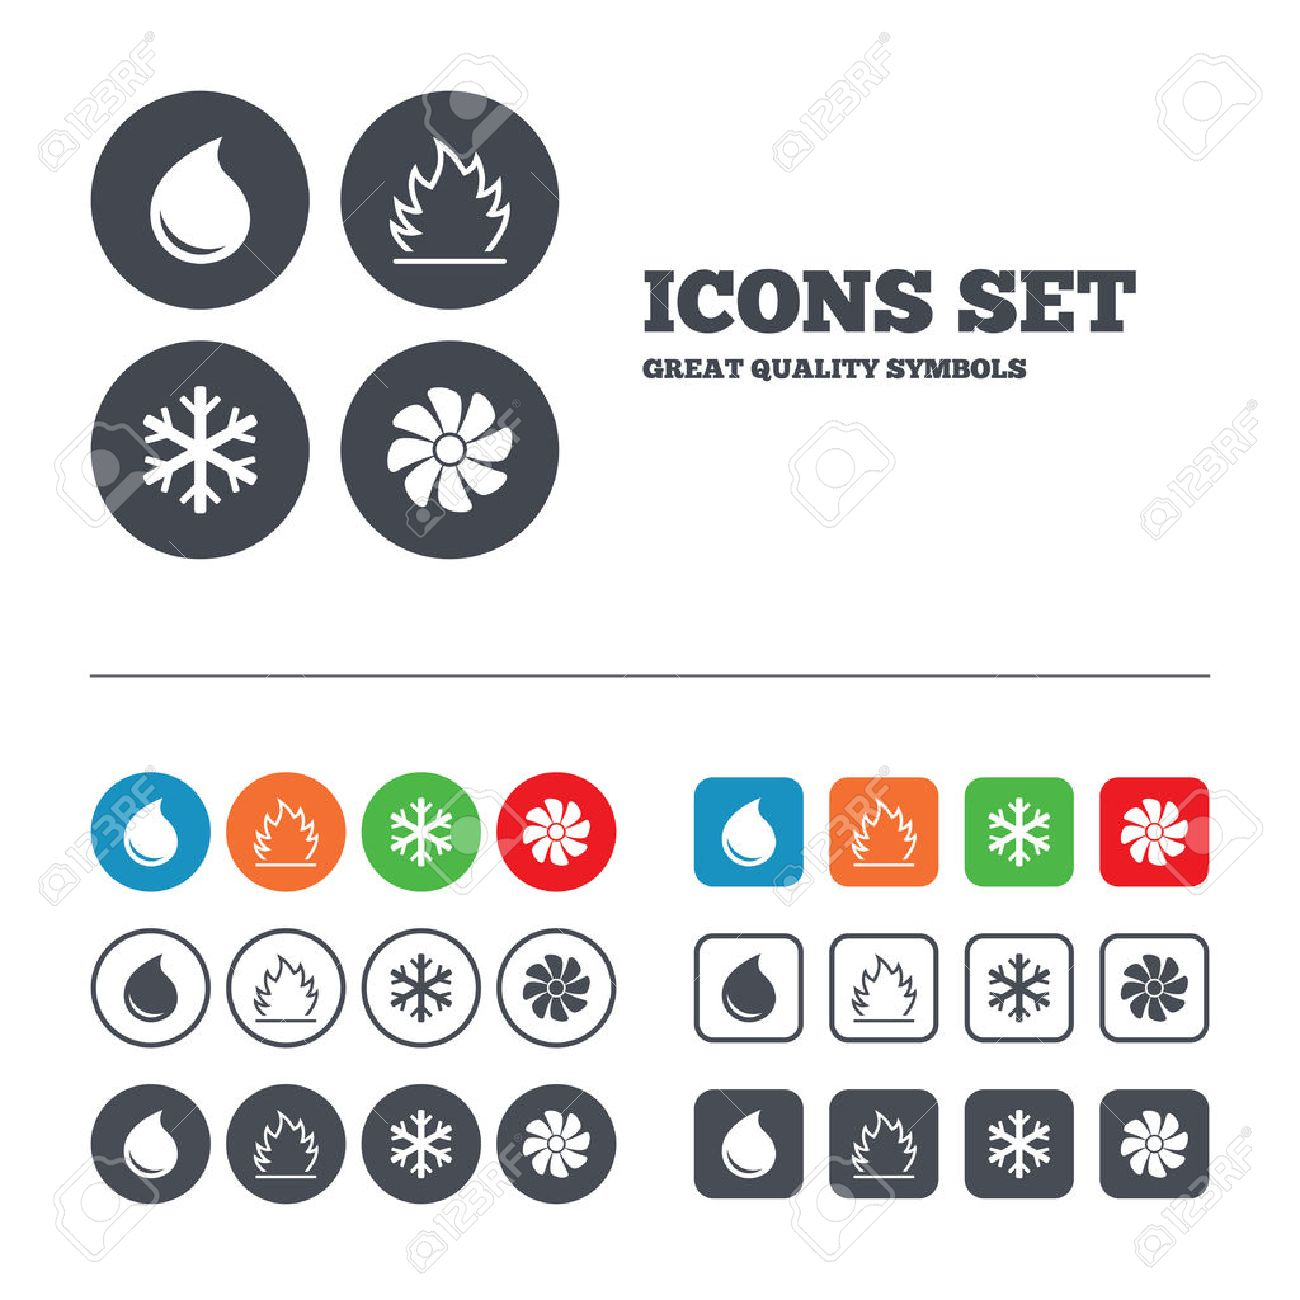 1397 Hvac Cliparts Stock Vector And Royalty Free Illustrations Control Drawing Symbols Icons Heating Ventilating Air Conditioning Water Supply Climate